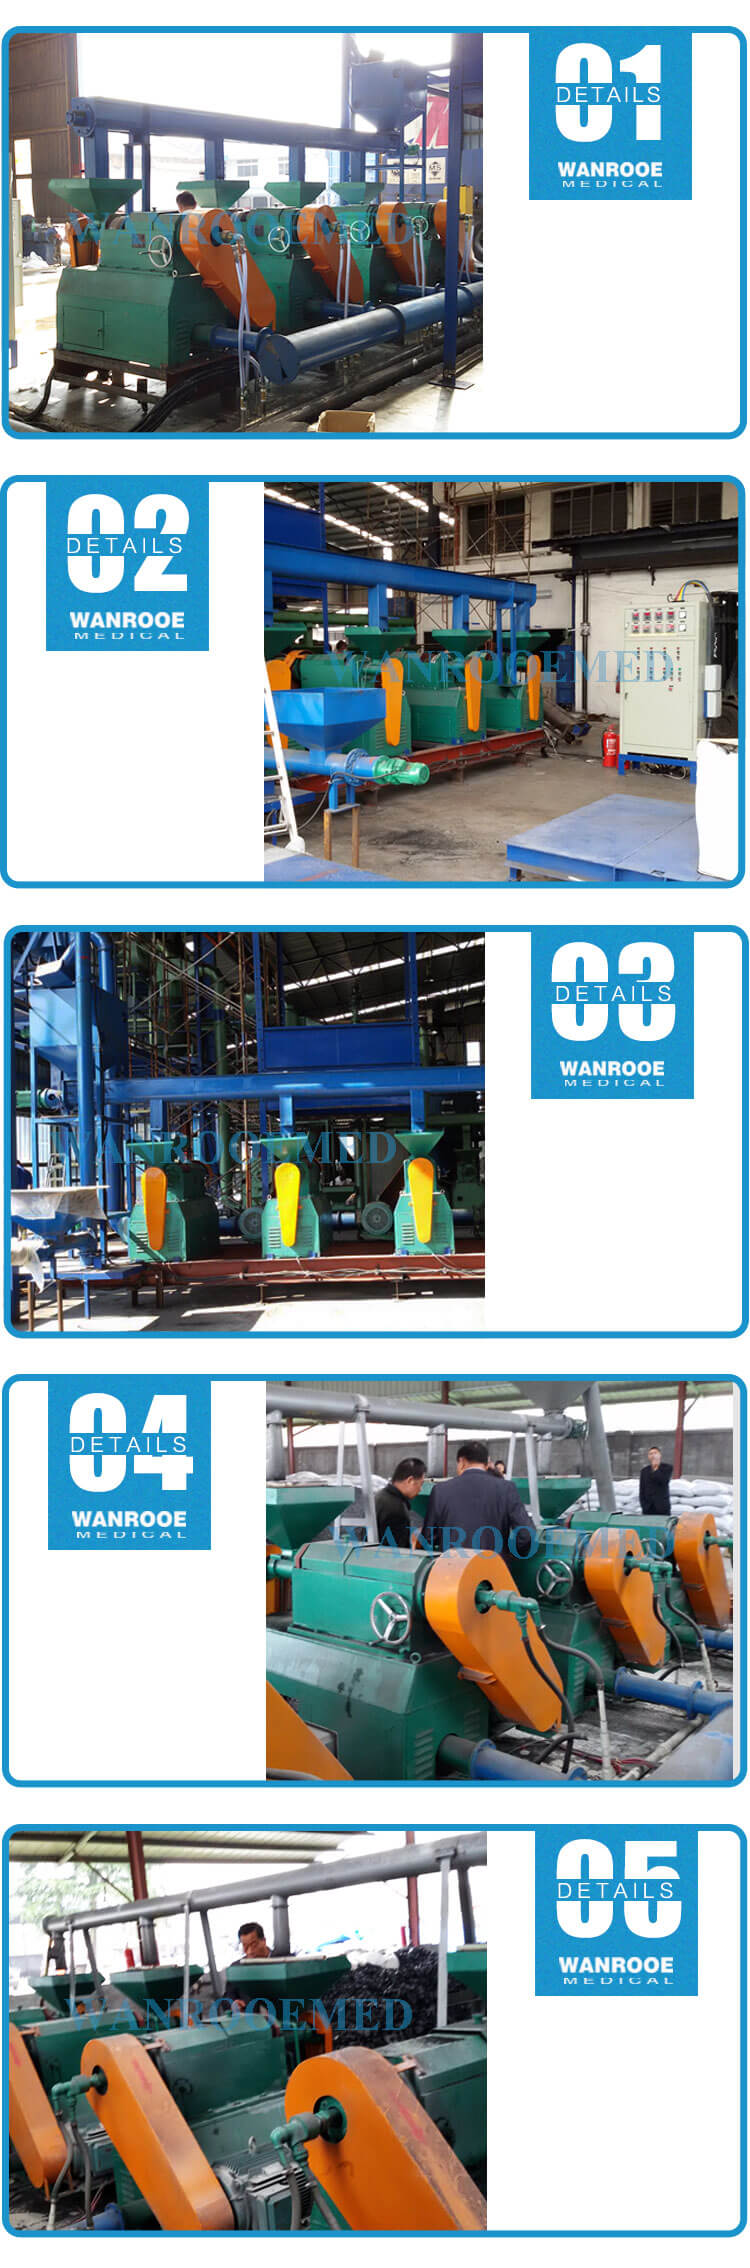 Rubber Grinding Machine,Tire Grinding Machine,Rubber Grinder,Tire Grinder,Tyre Grinder